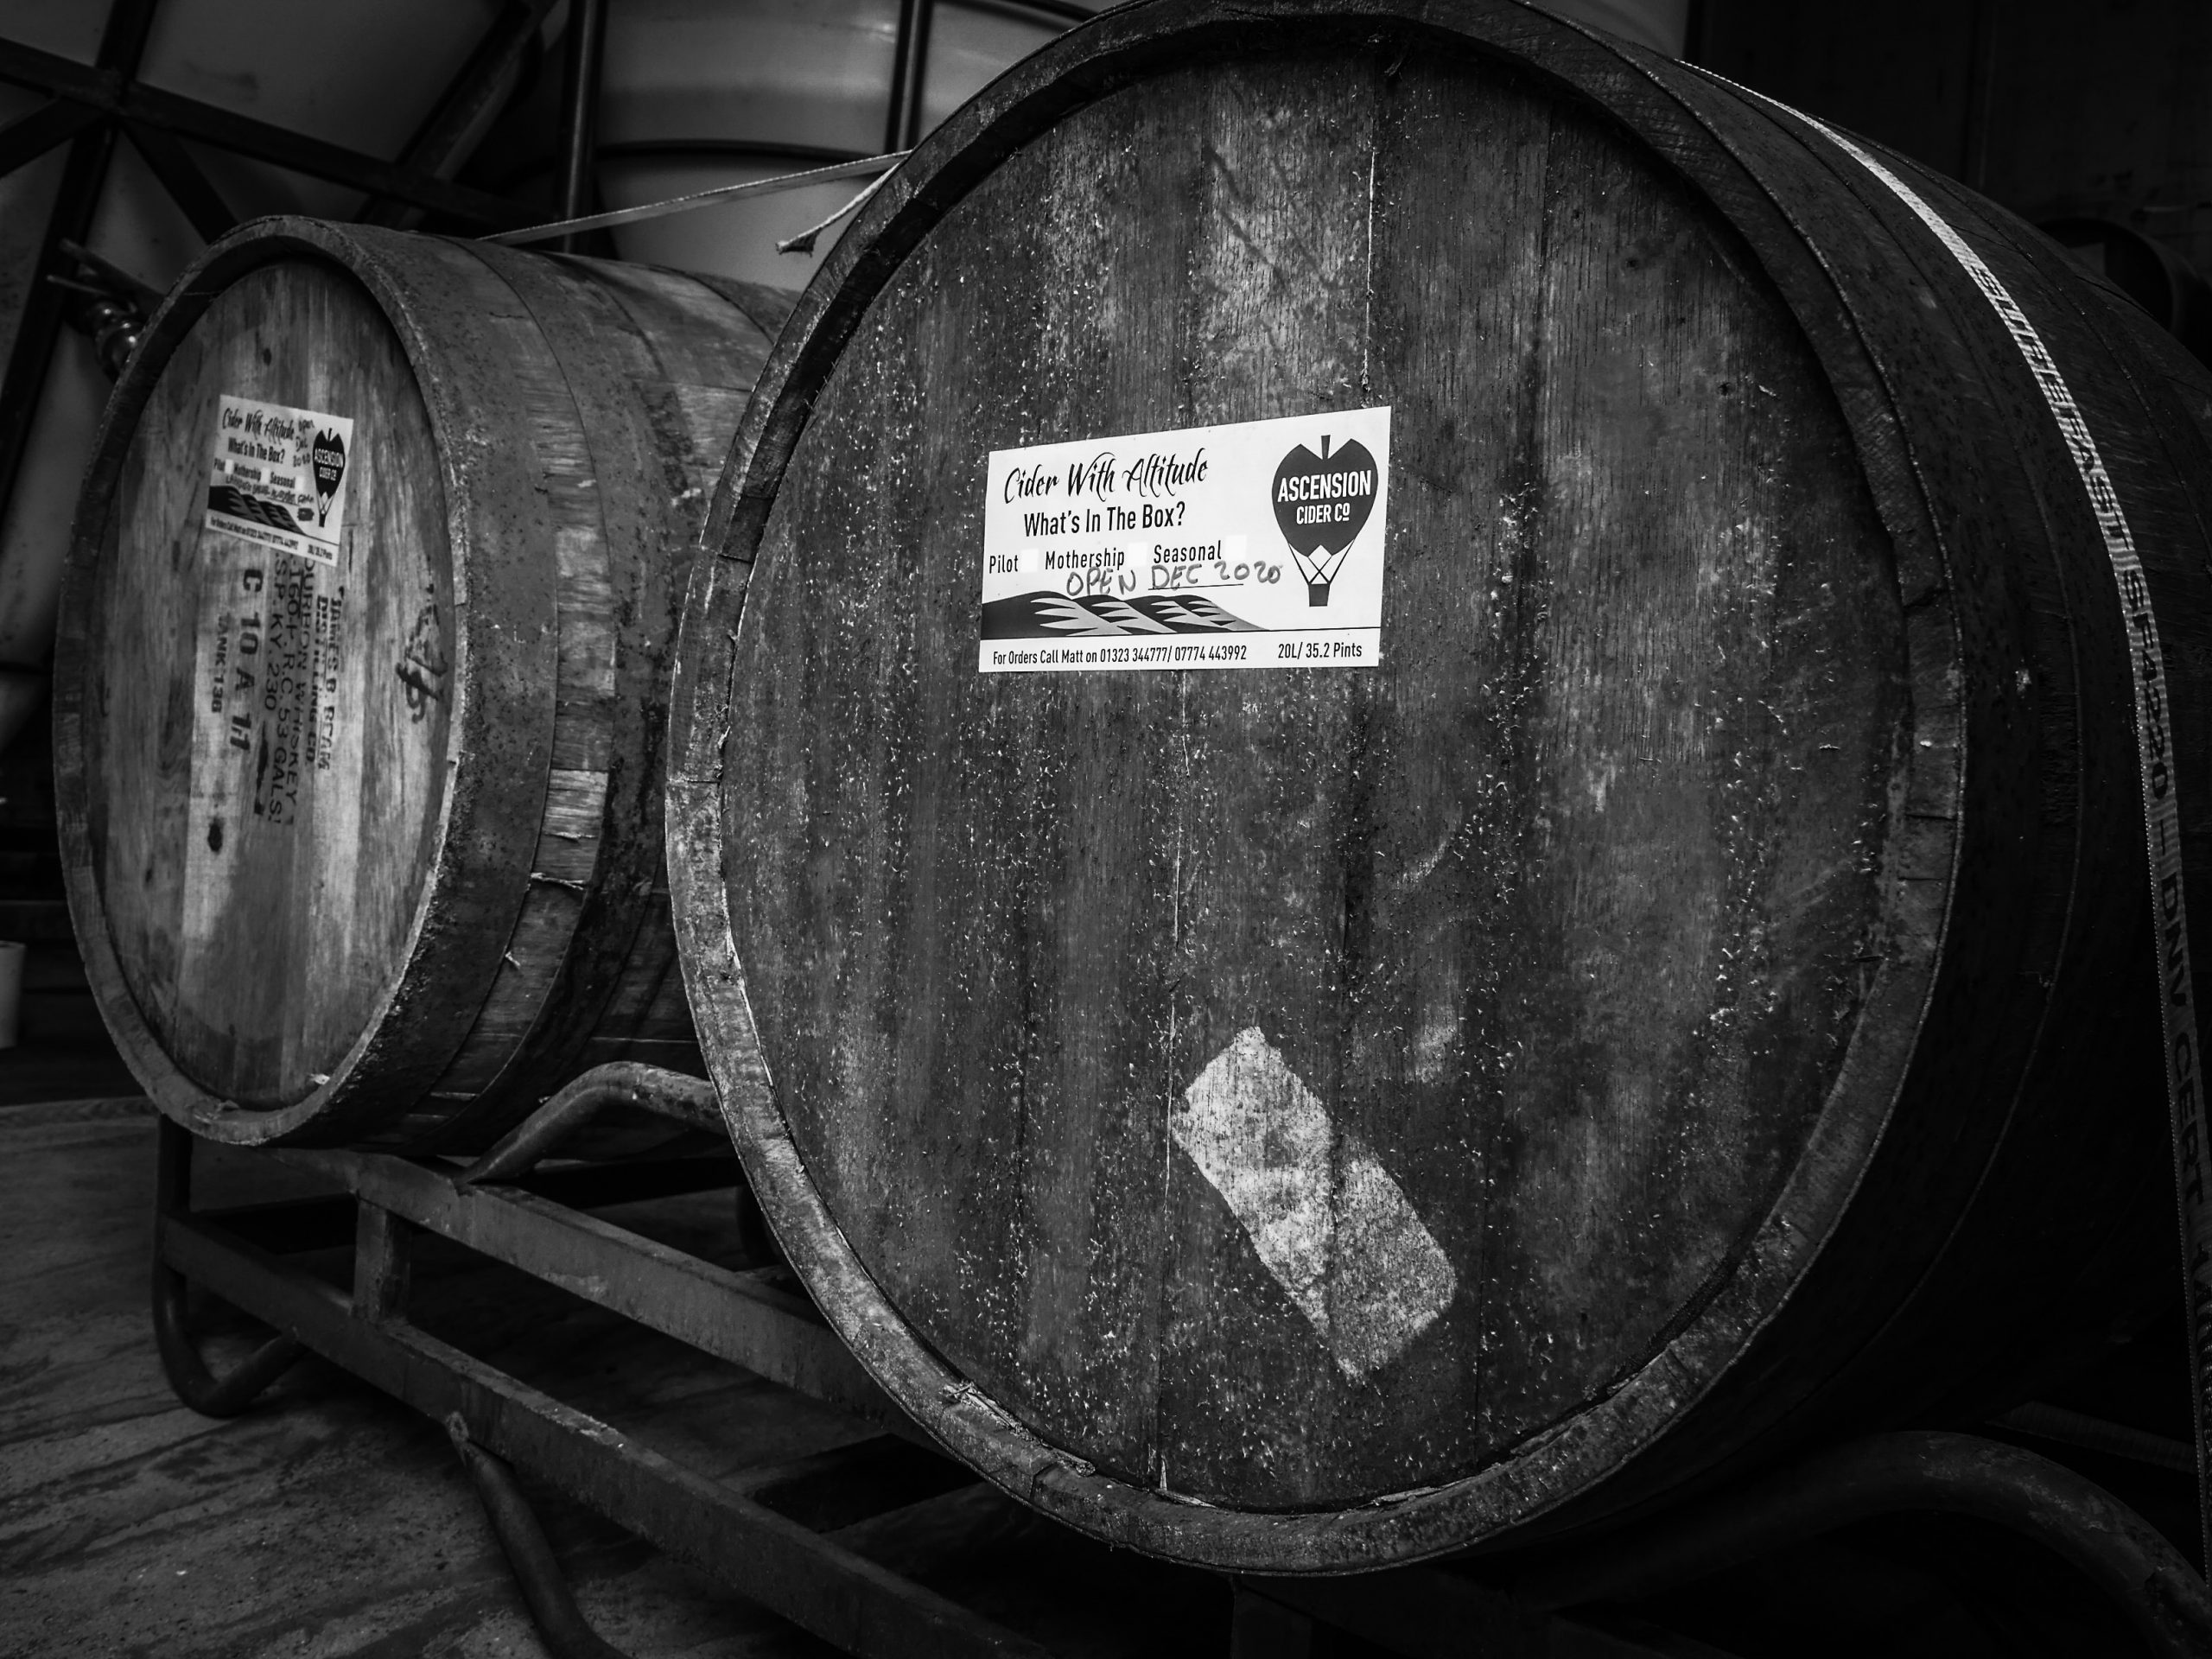 Aeronaut – Blending the ultimate session cider.